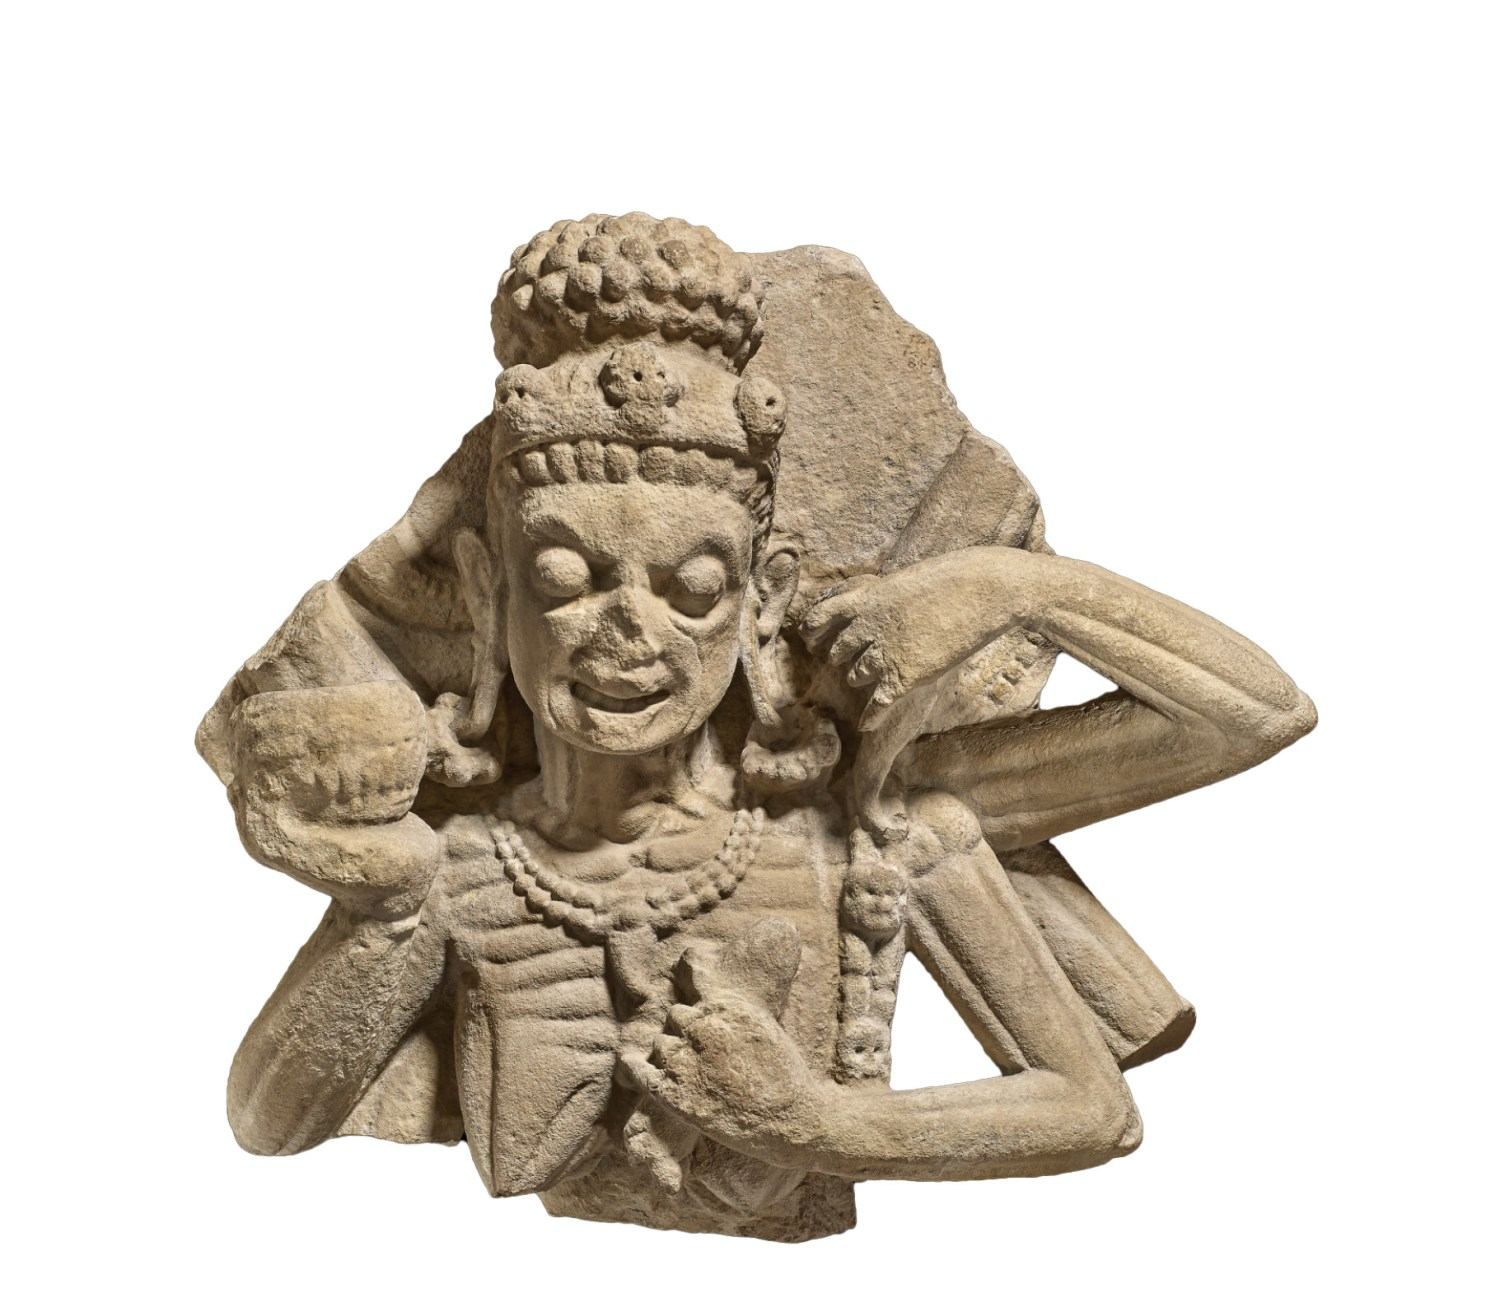 An 11th-century sculpture showing Chamunda, the leader of the Matrikas (ABOVE). Her bulging eyes, protruding bones, skull-adorned accessories, and the skull cup she brandishes create an unsettling composition. A more complete 9th-century rendering of Chamunda shows her dancing on a corpse (RIGHT), while the inhabitants of the cremation grounds she frequents watch on.